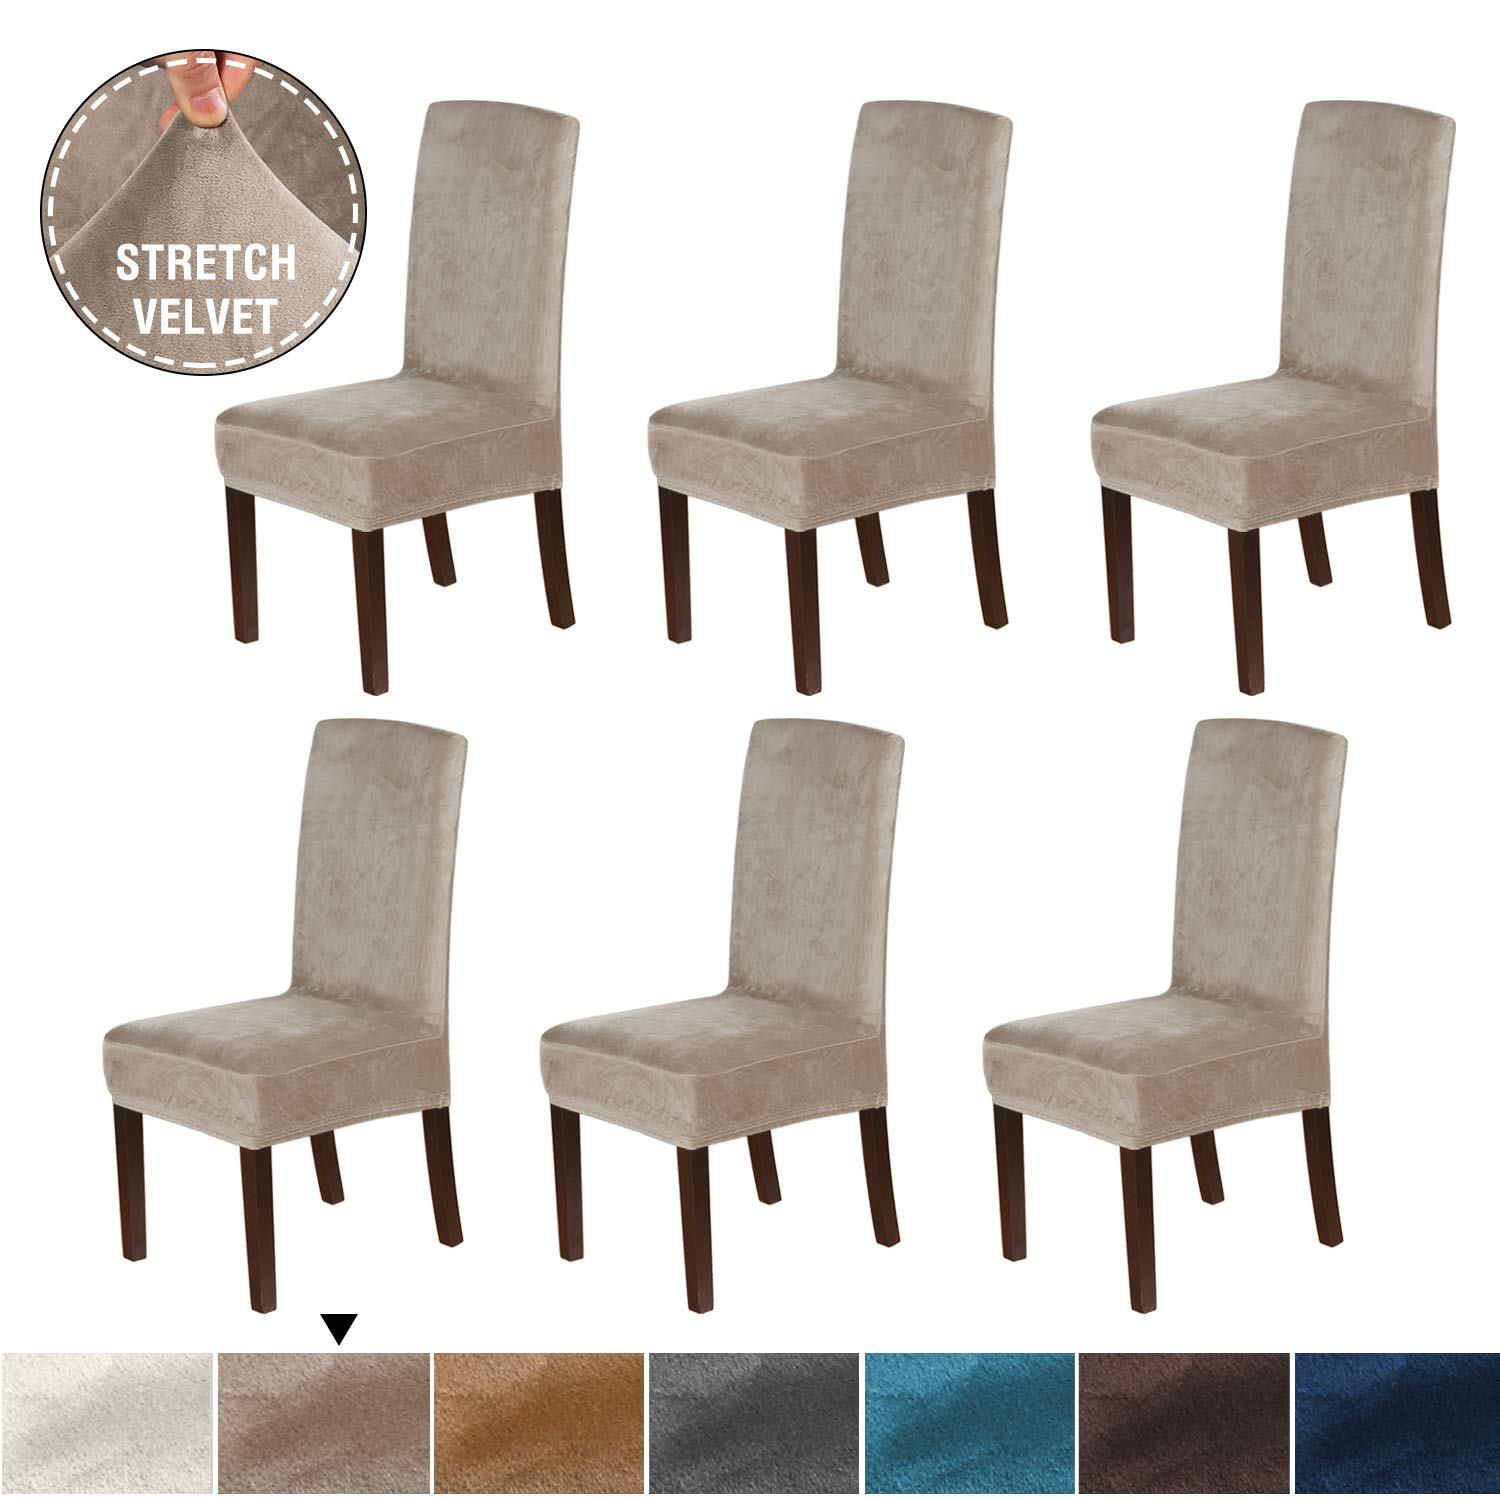 H.VERSAILTEX Original Velvet Stretch Dining Room Chair Covers Velvet Plush Removable Washable Kitchen Parson Chair Slipcovers Chair Protector Cover for Hotel, Dining Room, Ceremony, Set of 6, Taupe by H.VERSAILTEX